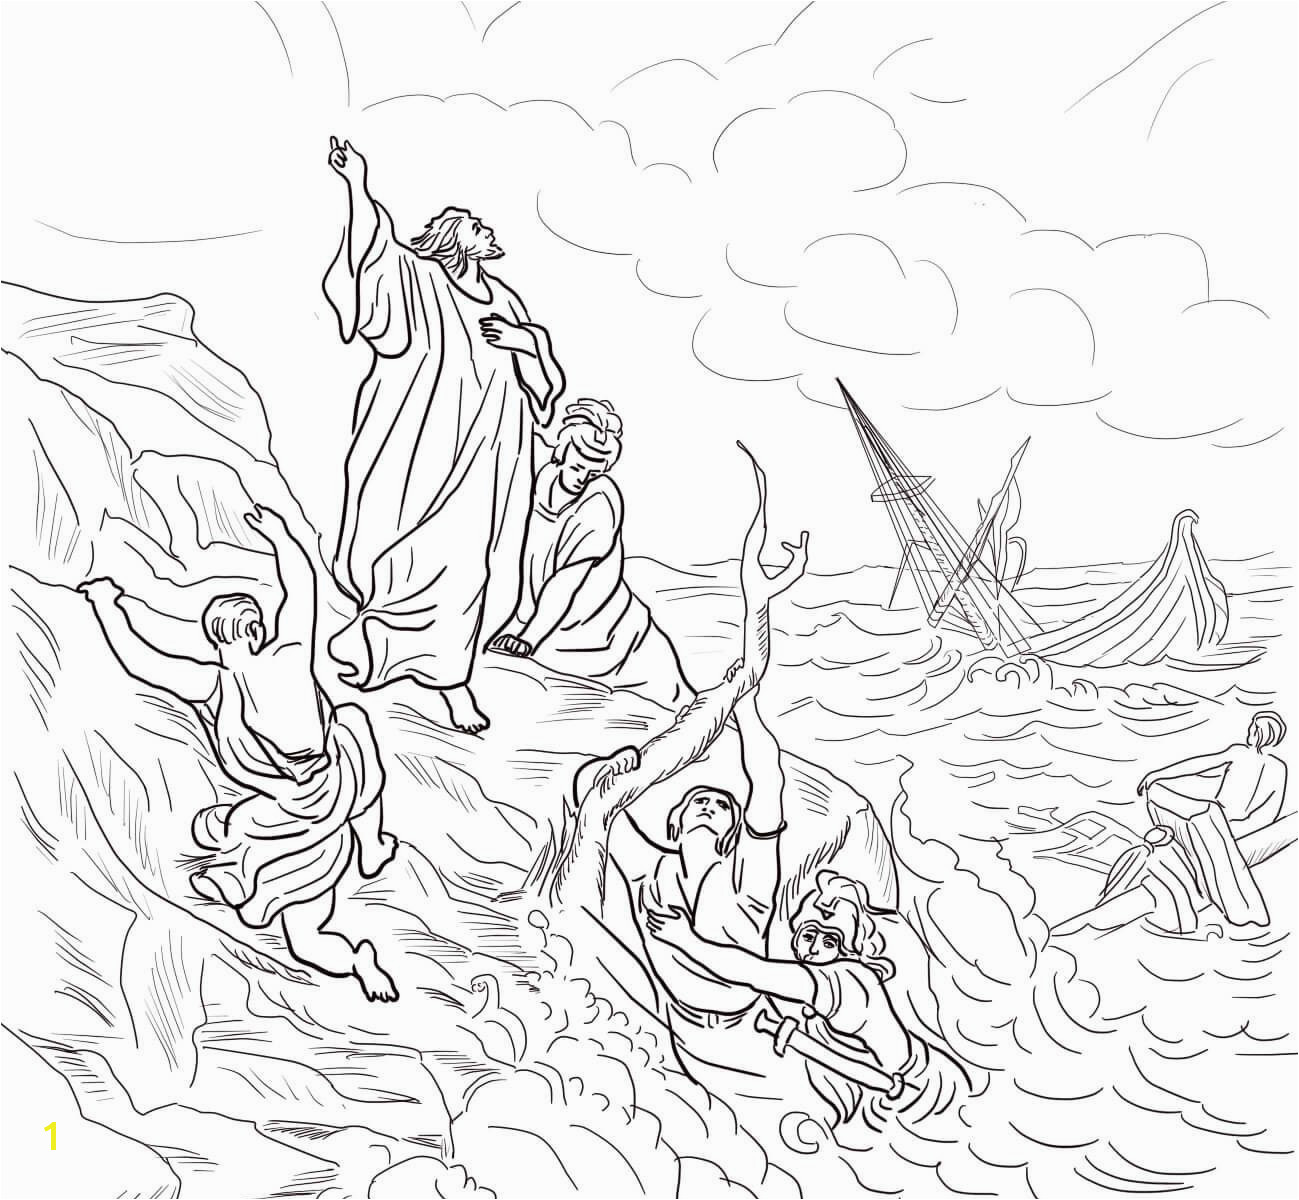 Apostle Paul Shipwrecked Coloring Page Awesome attractive Coloring Pages for Adults Free to Print Adornment